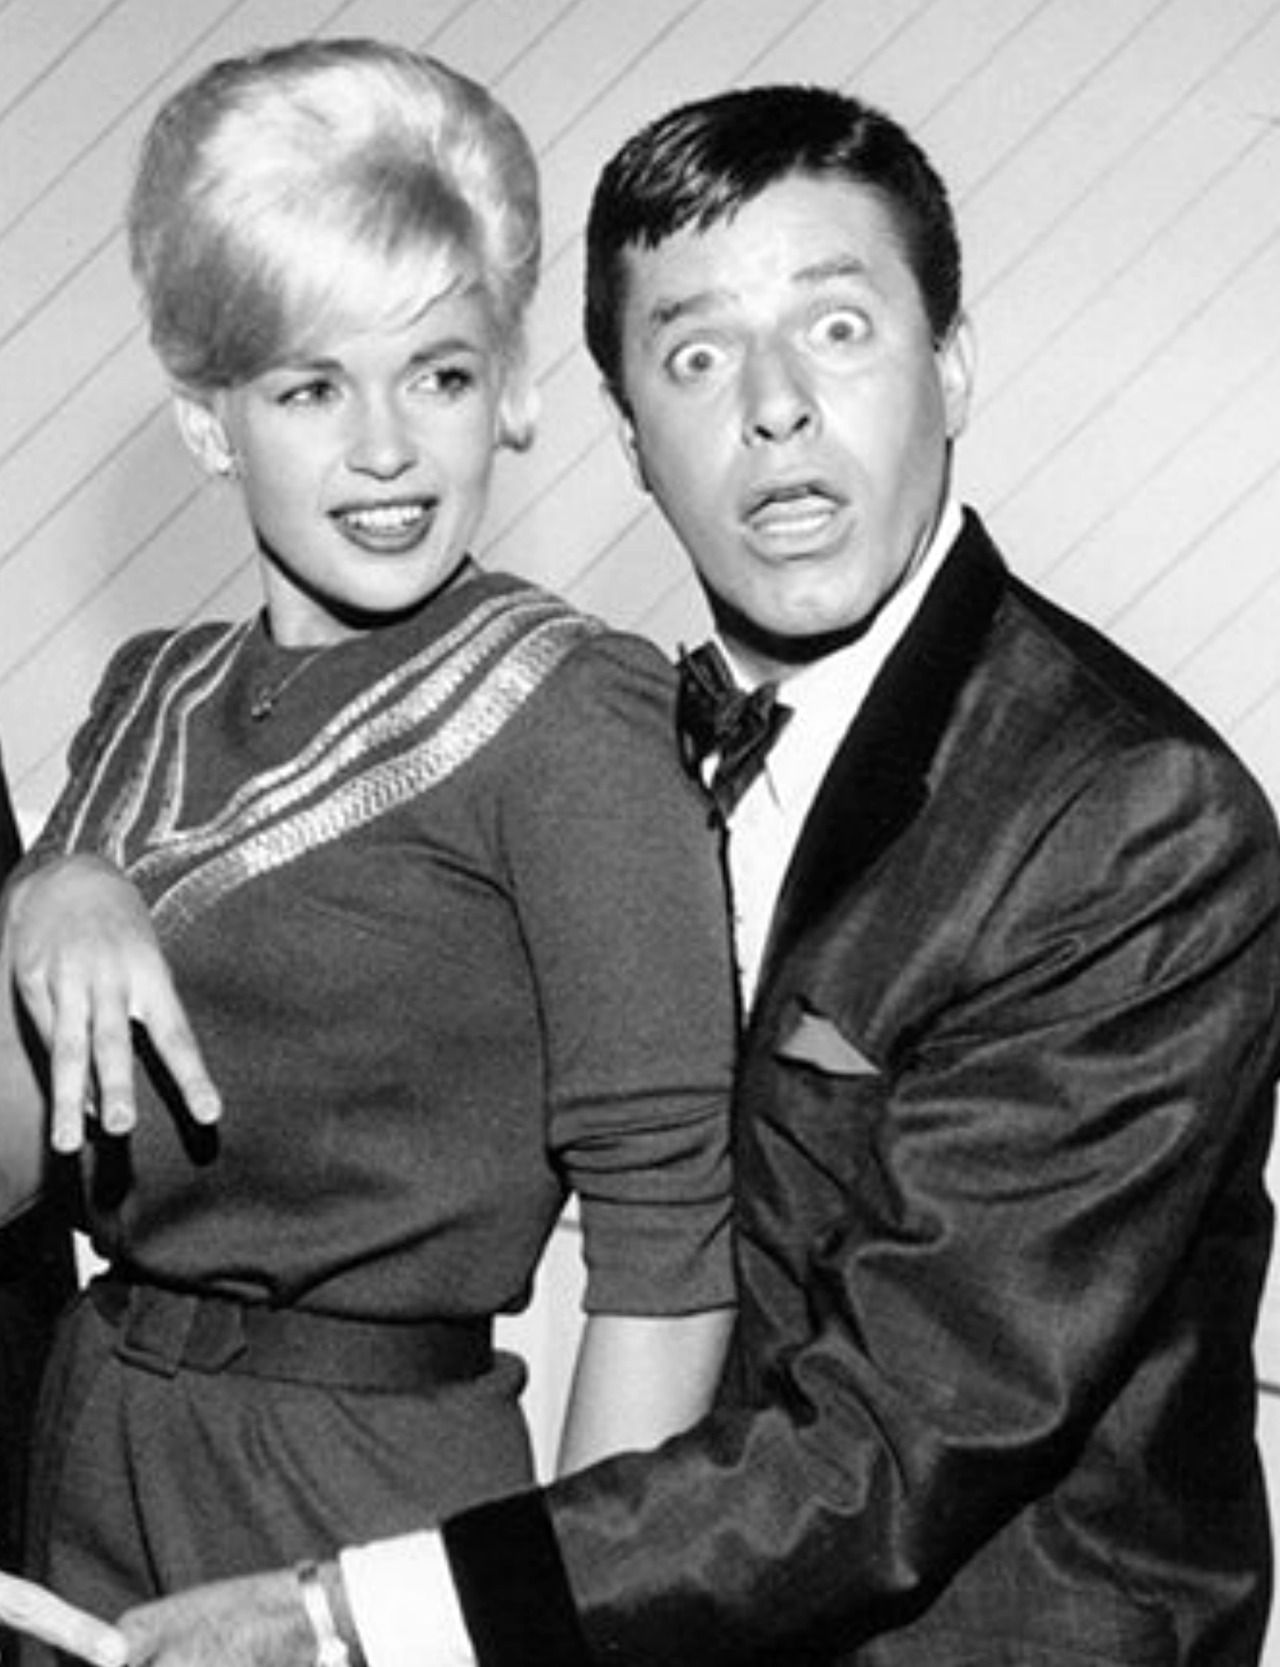 jerry lewis | Tumblr